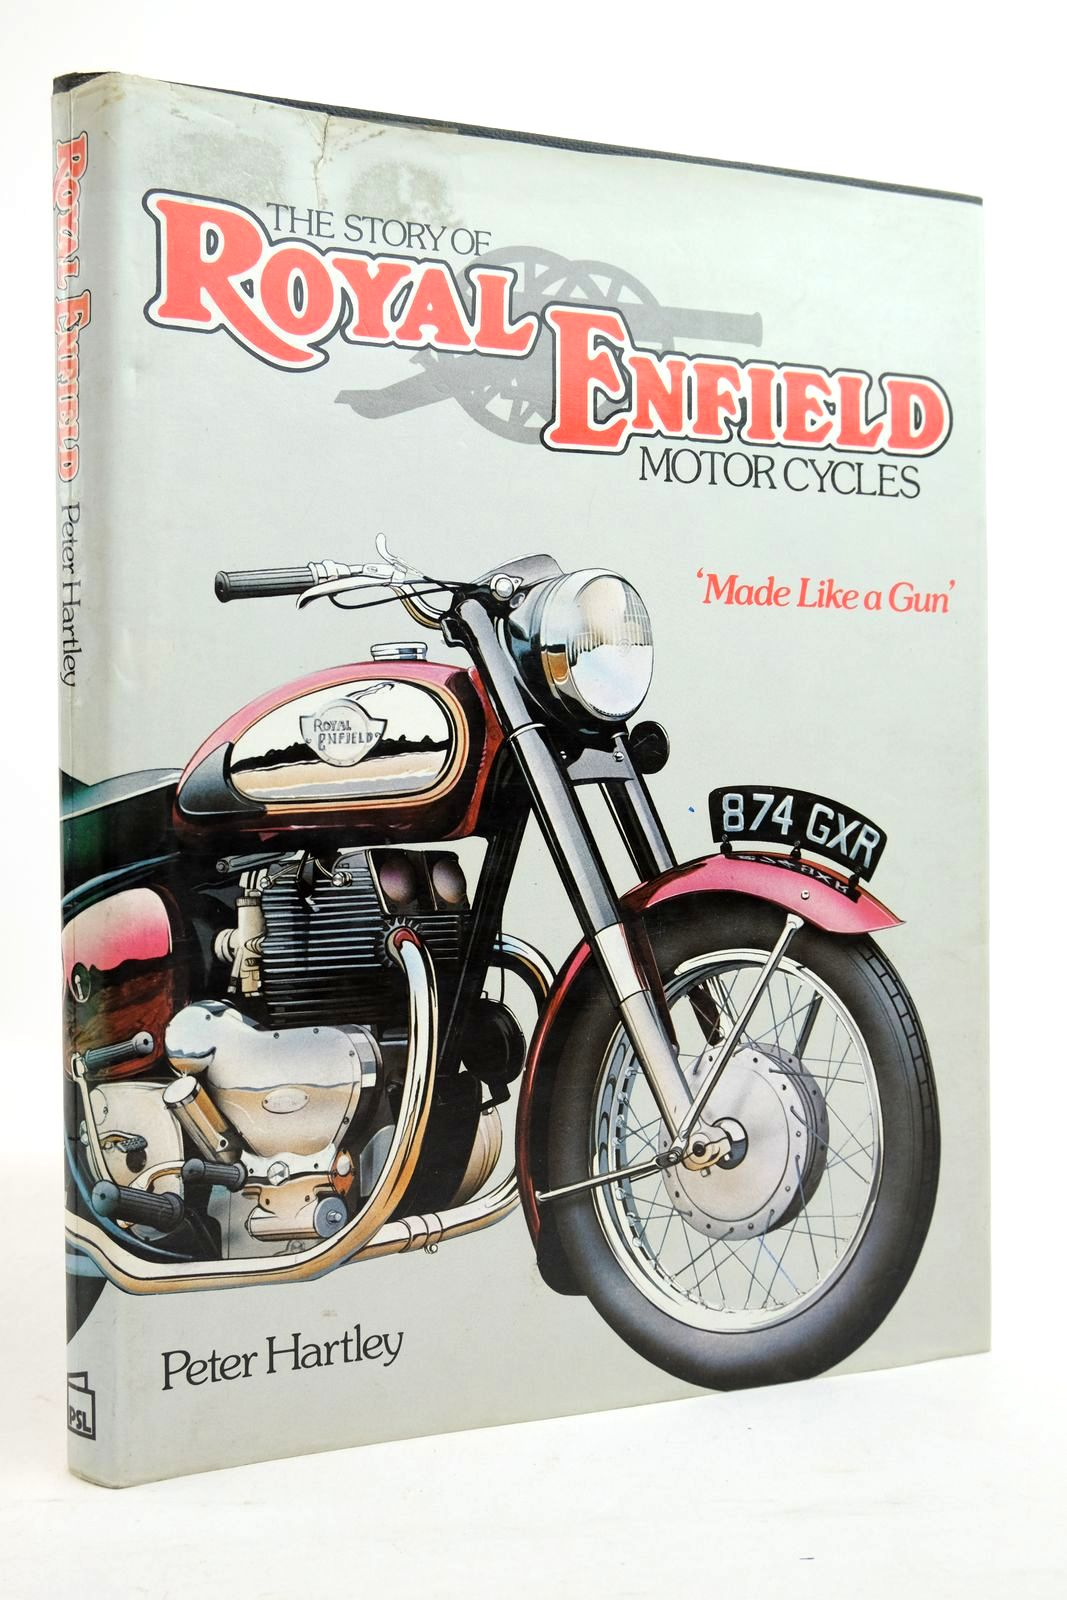 Photo of THE STORY OF ROYAL ENFIELD MOTOR CYCLES written by Hartley, Peter published by Patrick Stephens (STOCK CODE: 2134885)  for sale by Stella & Rose's Books